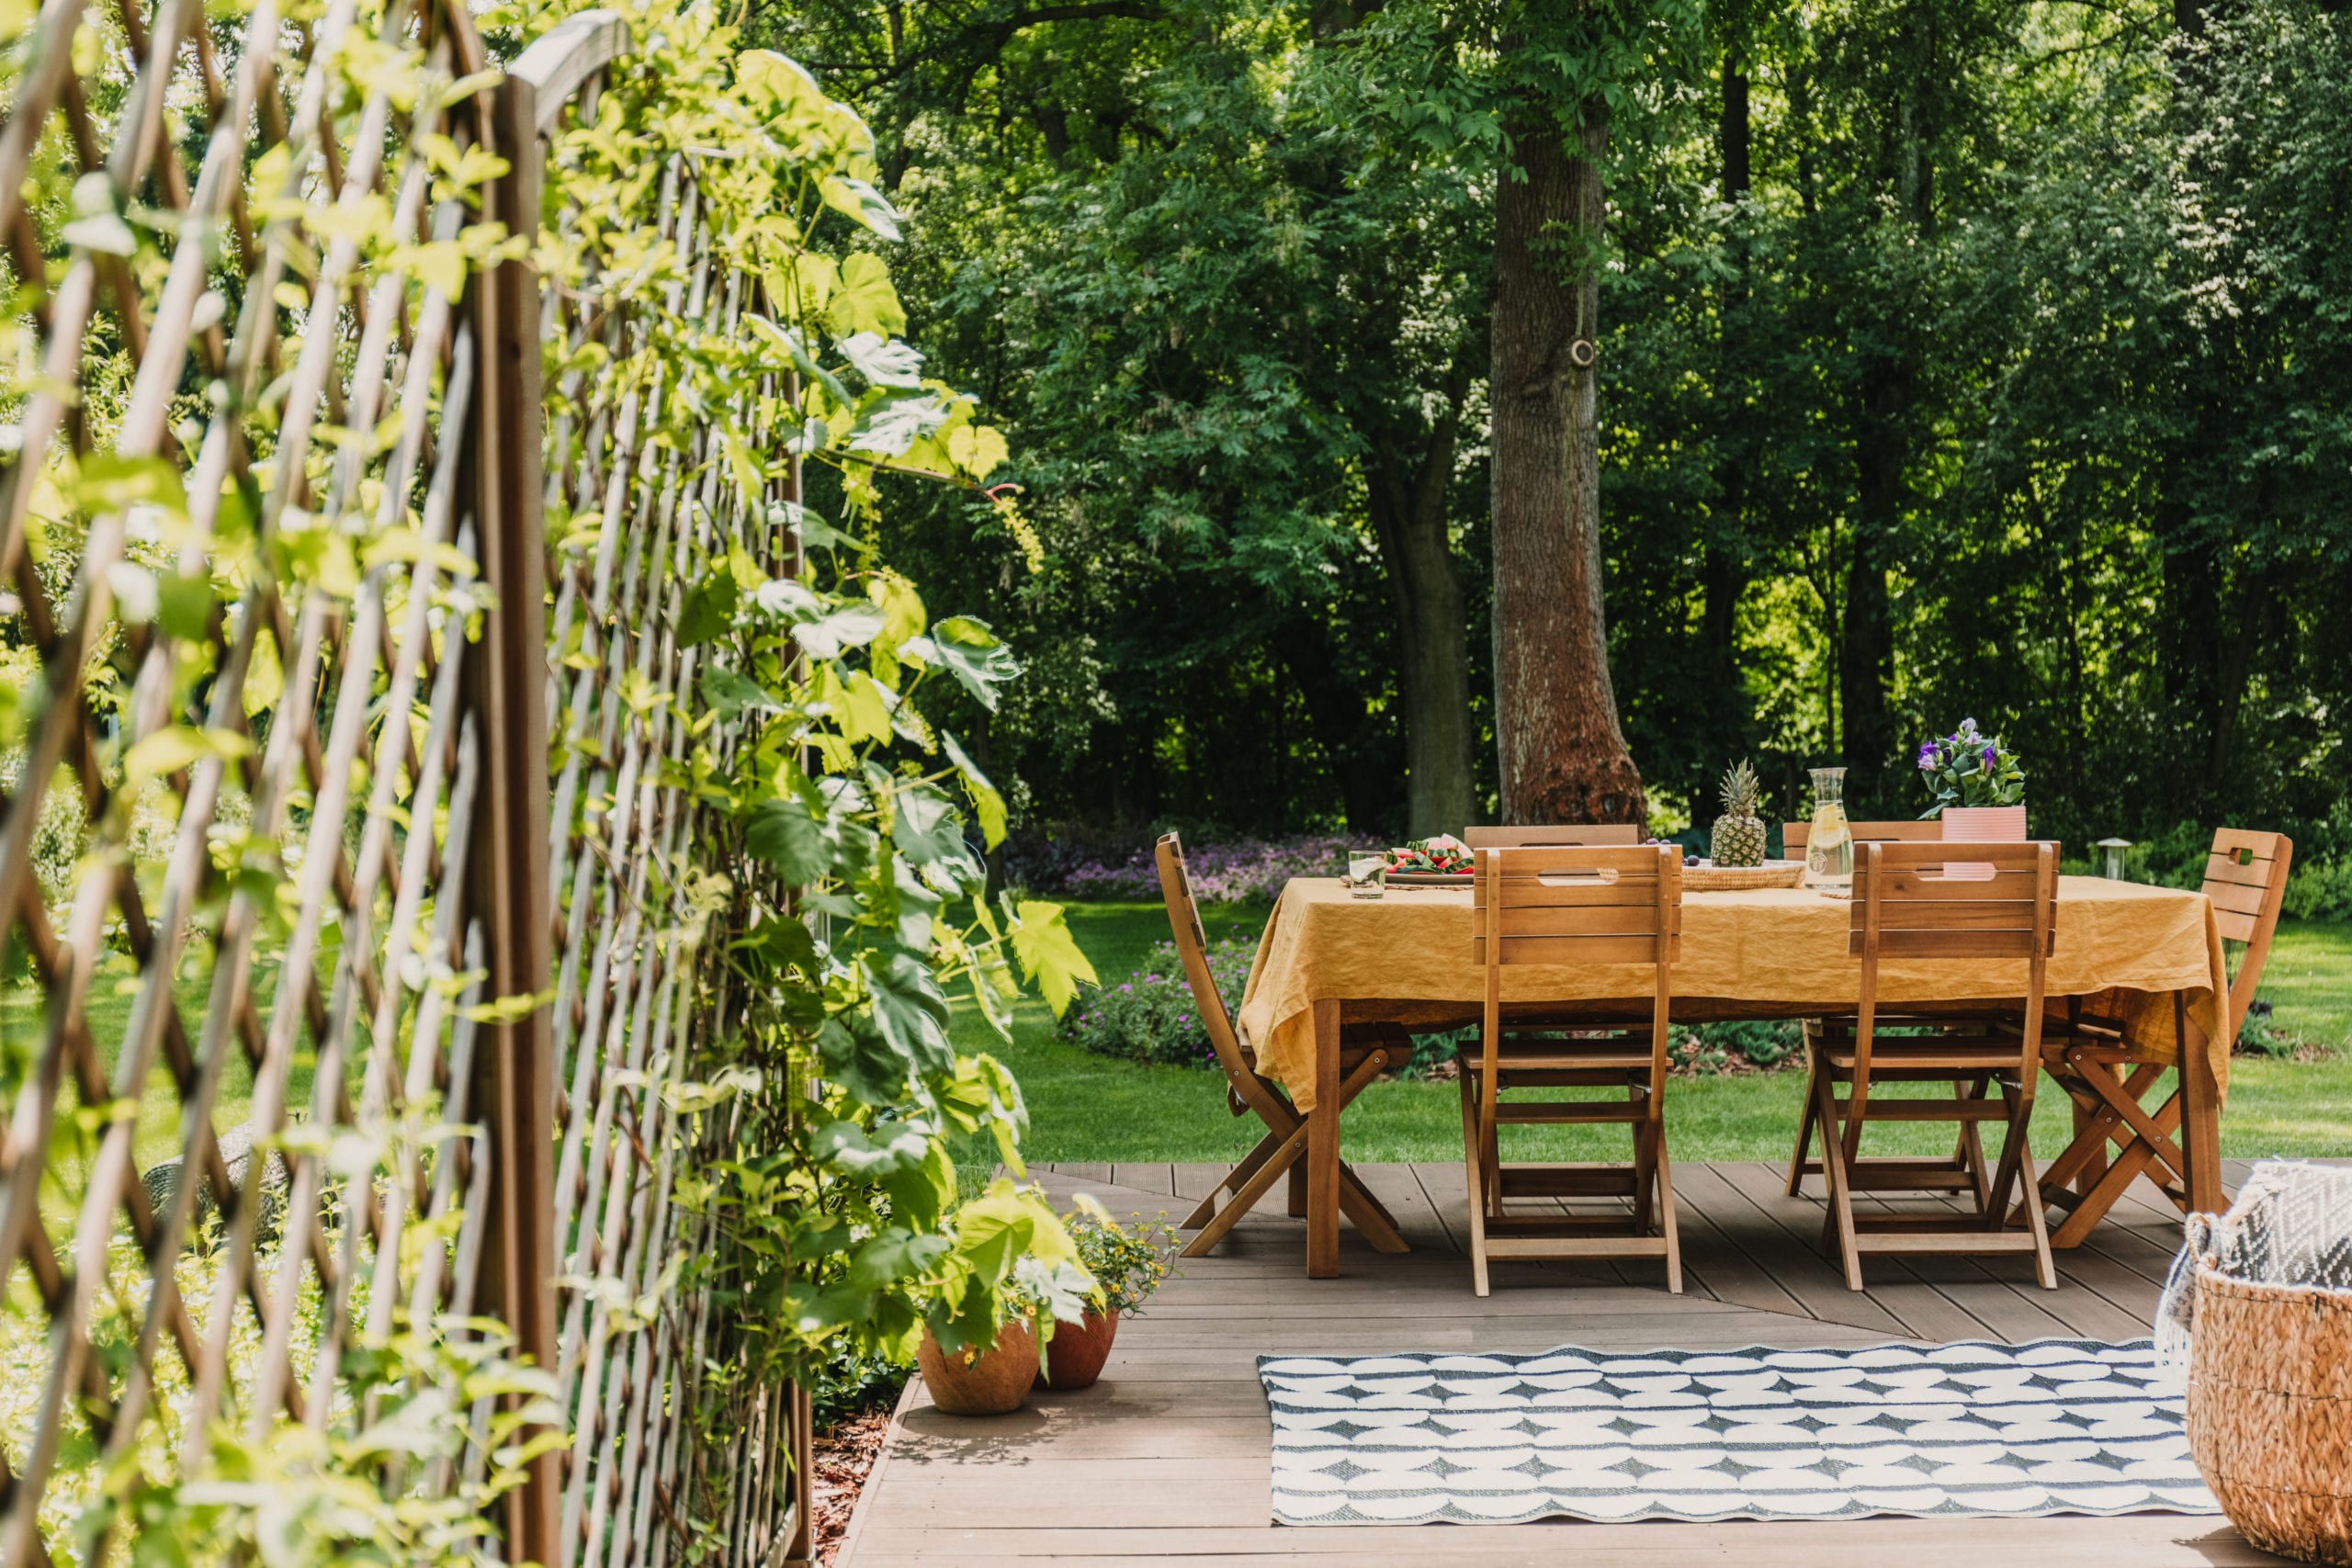 Patio with a dining table